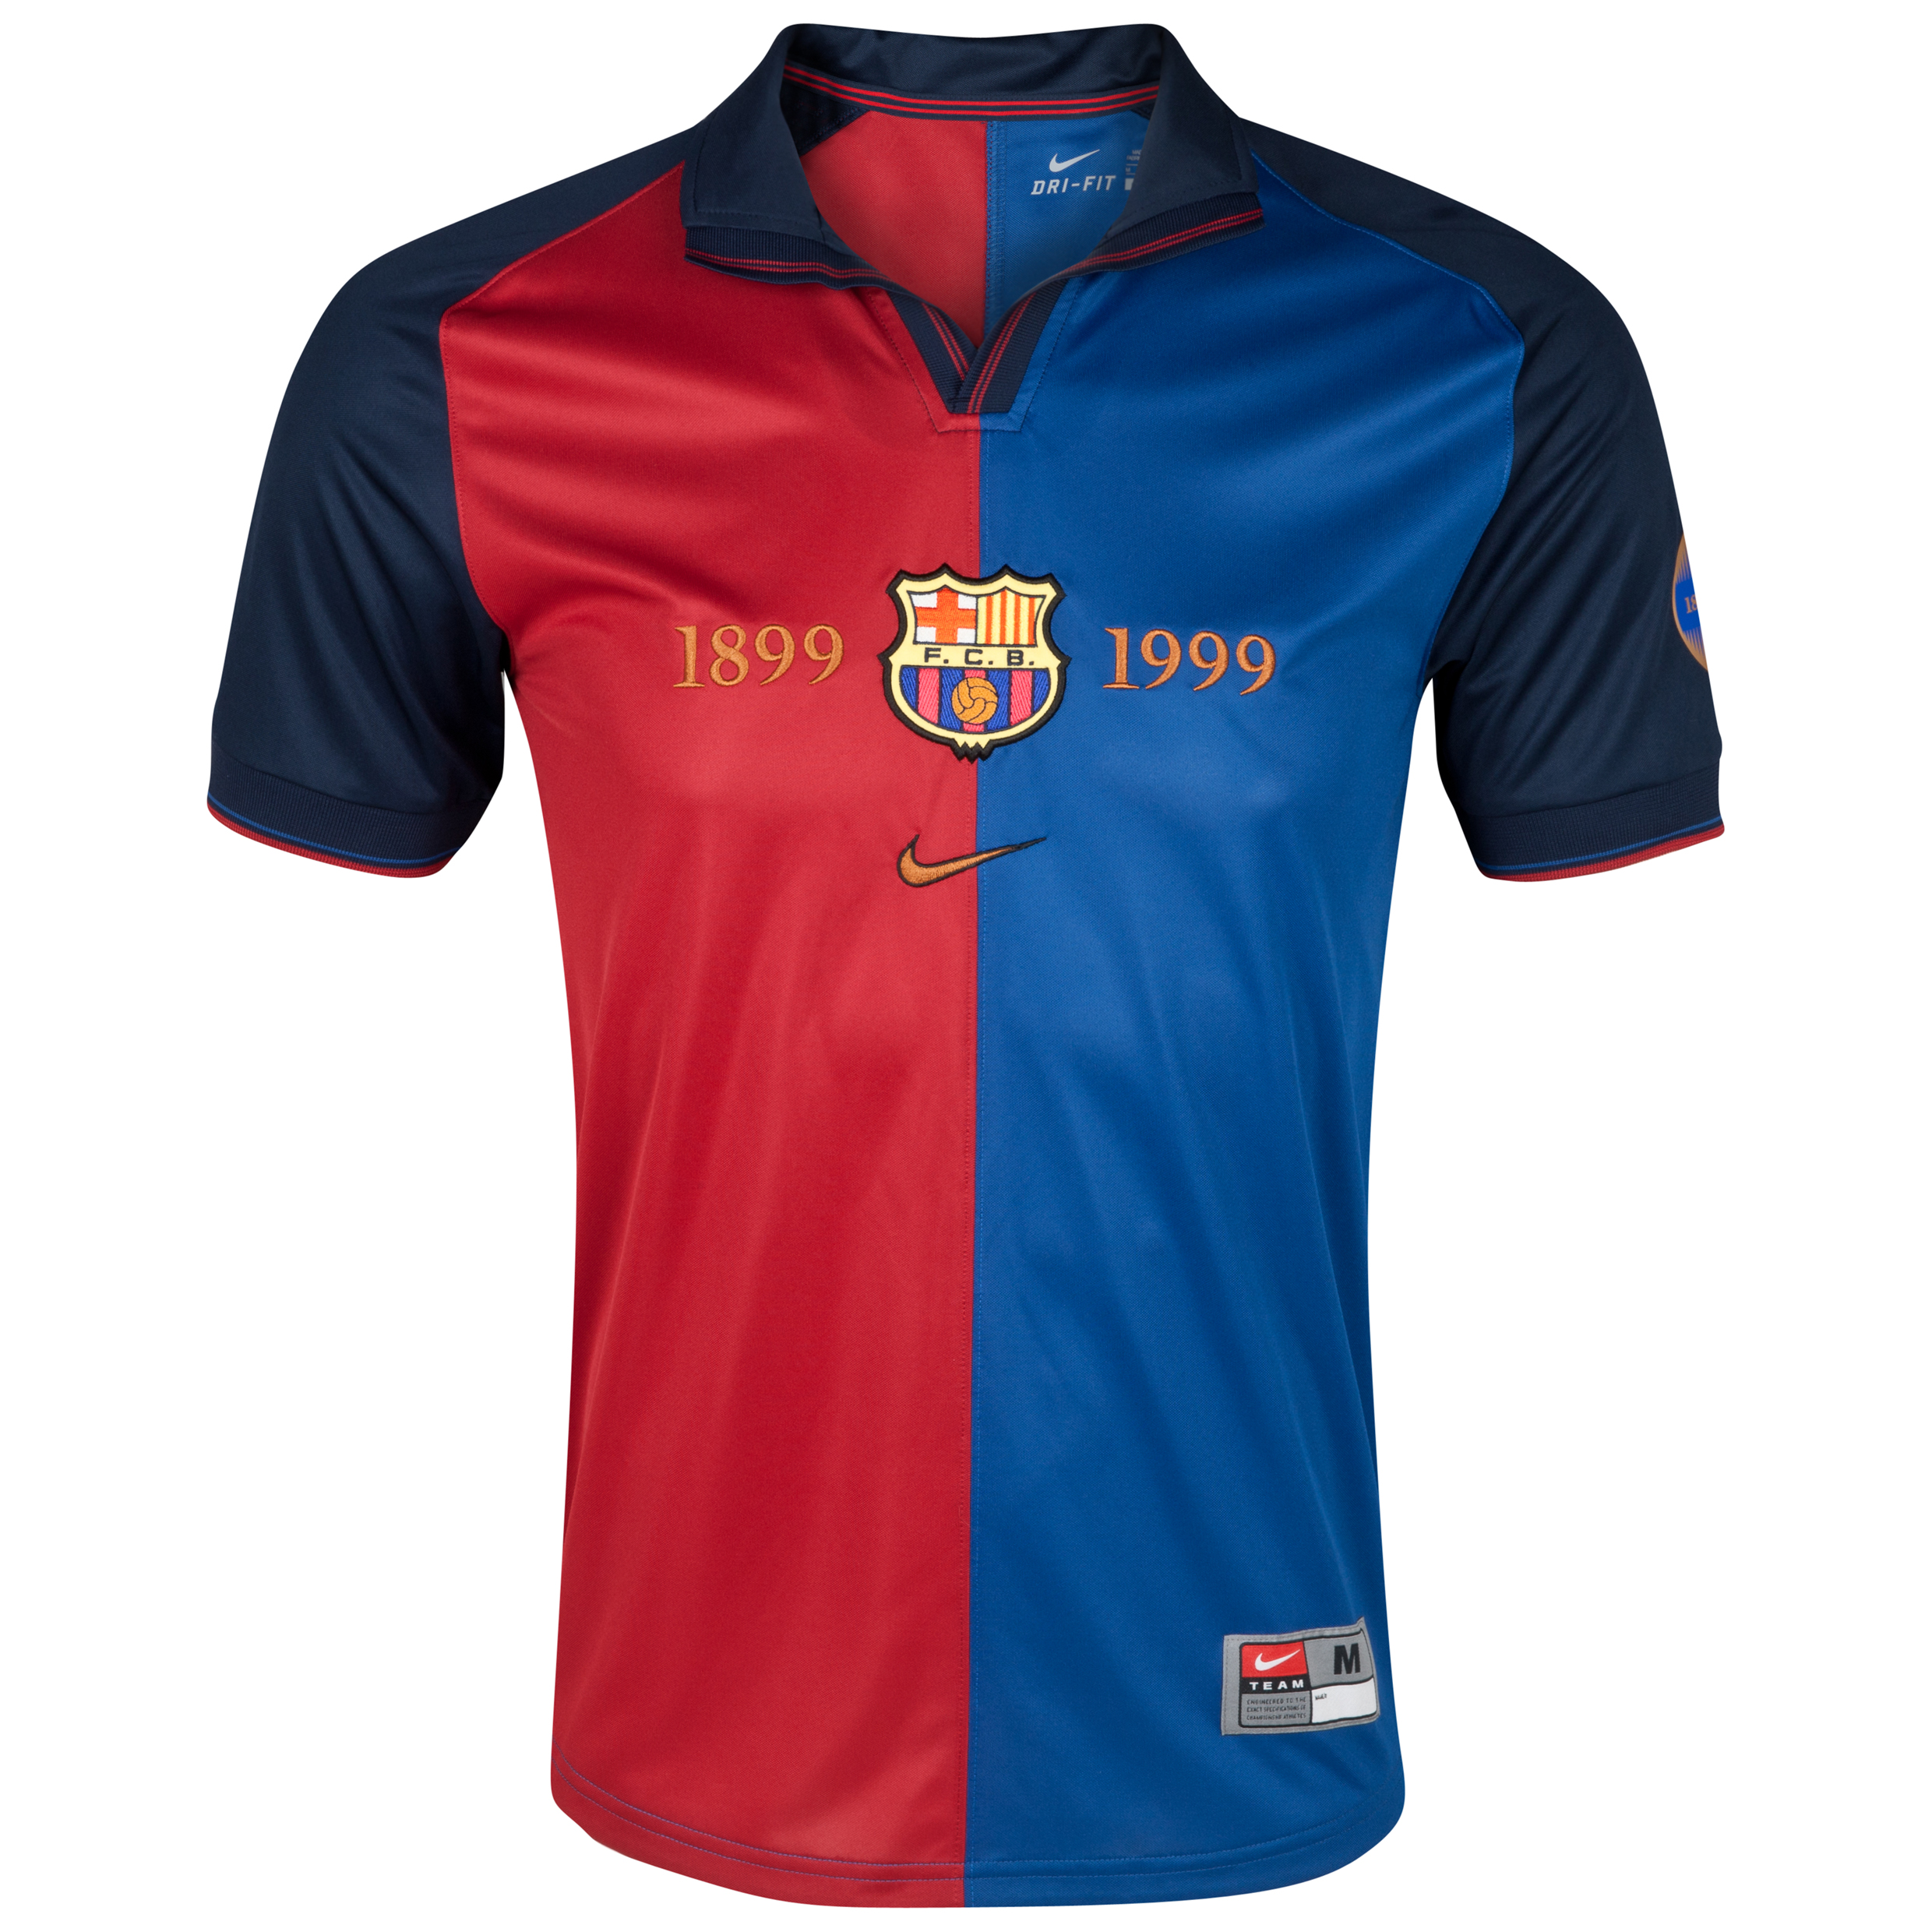 Barcelona Centenial 1999 Shirt - Storm Blue/Storm Red/Metallic Gold